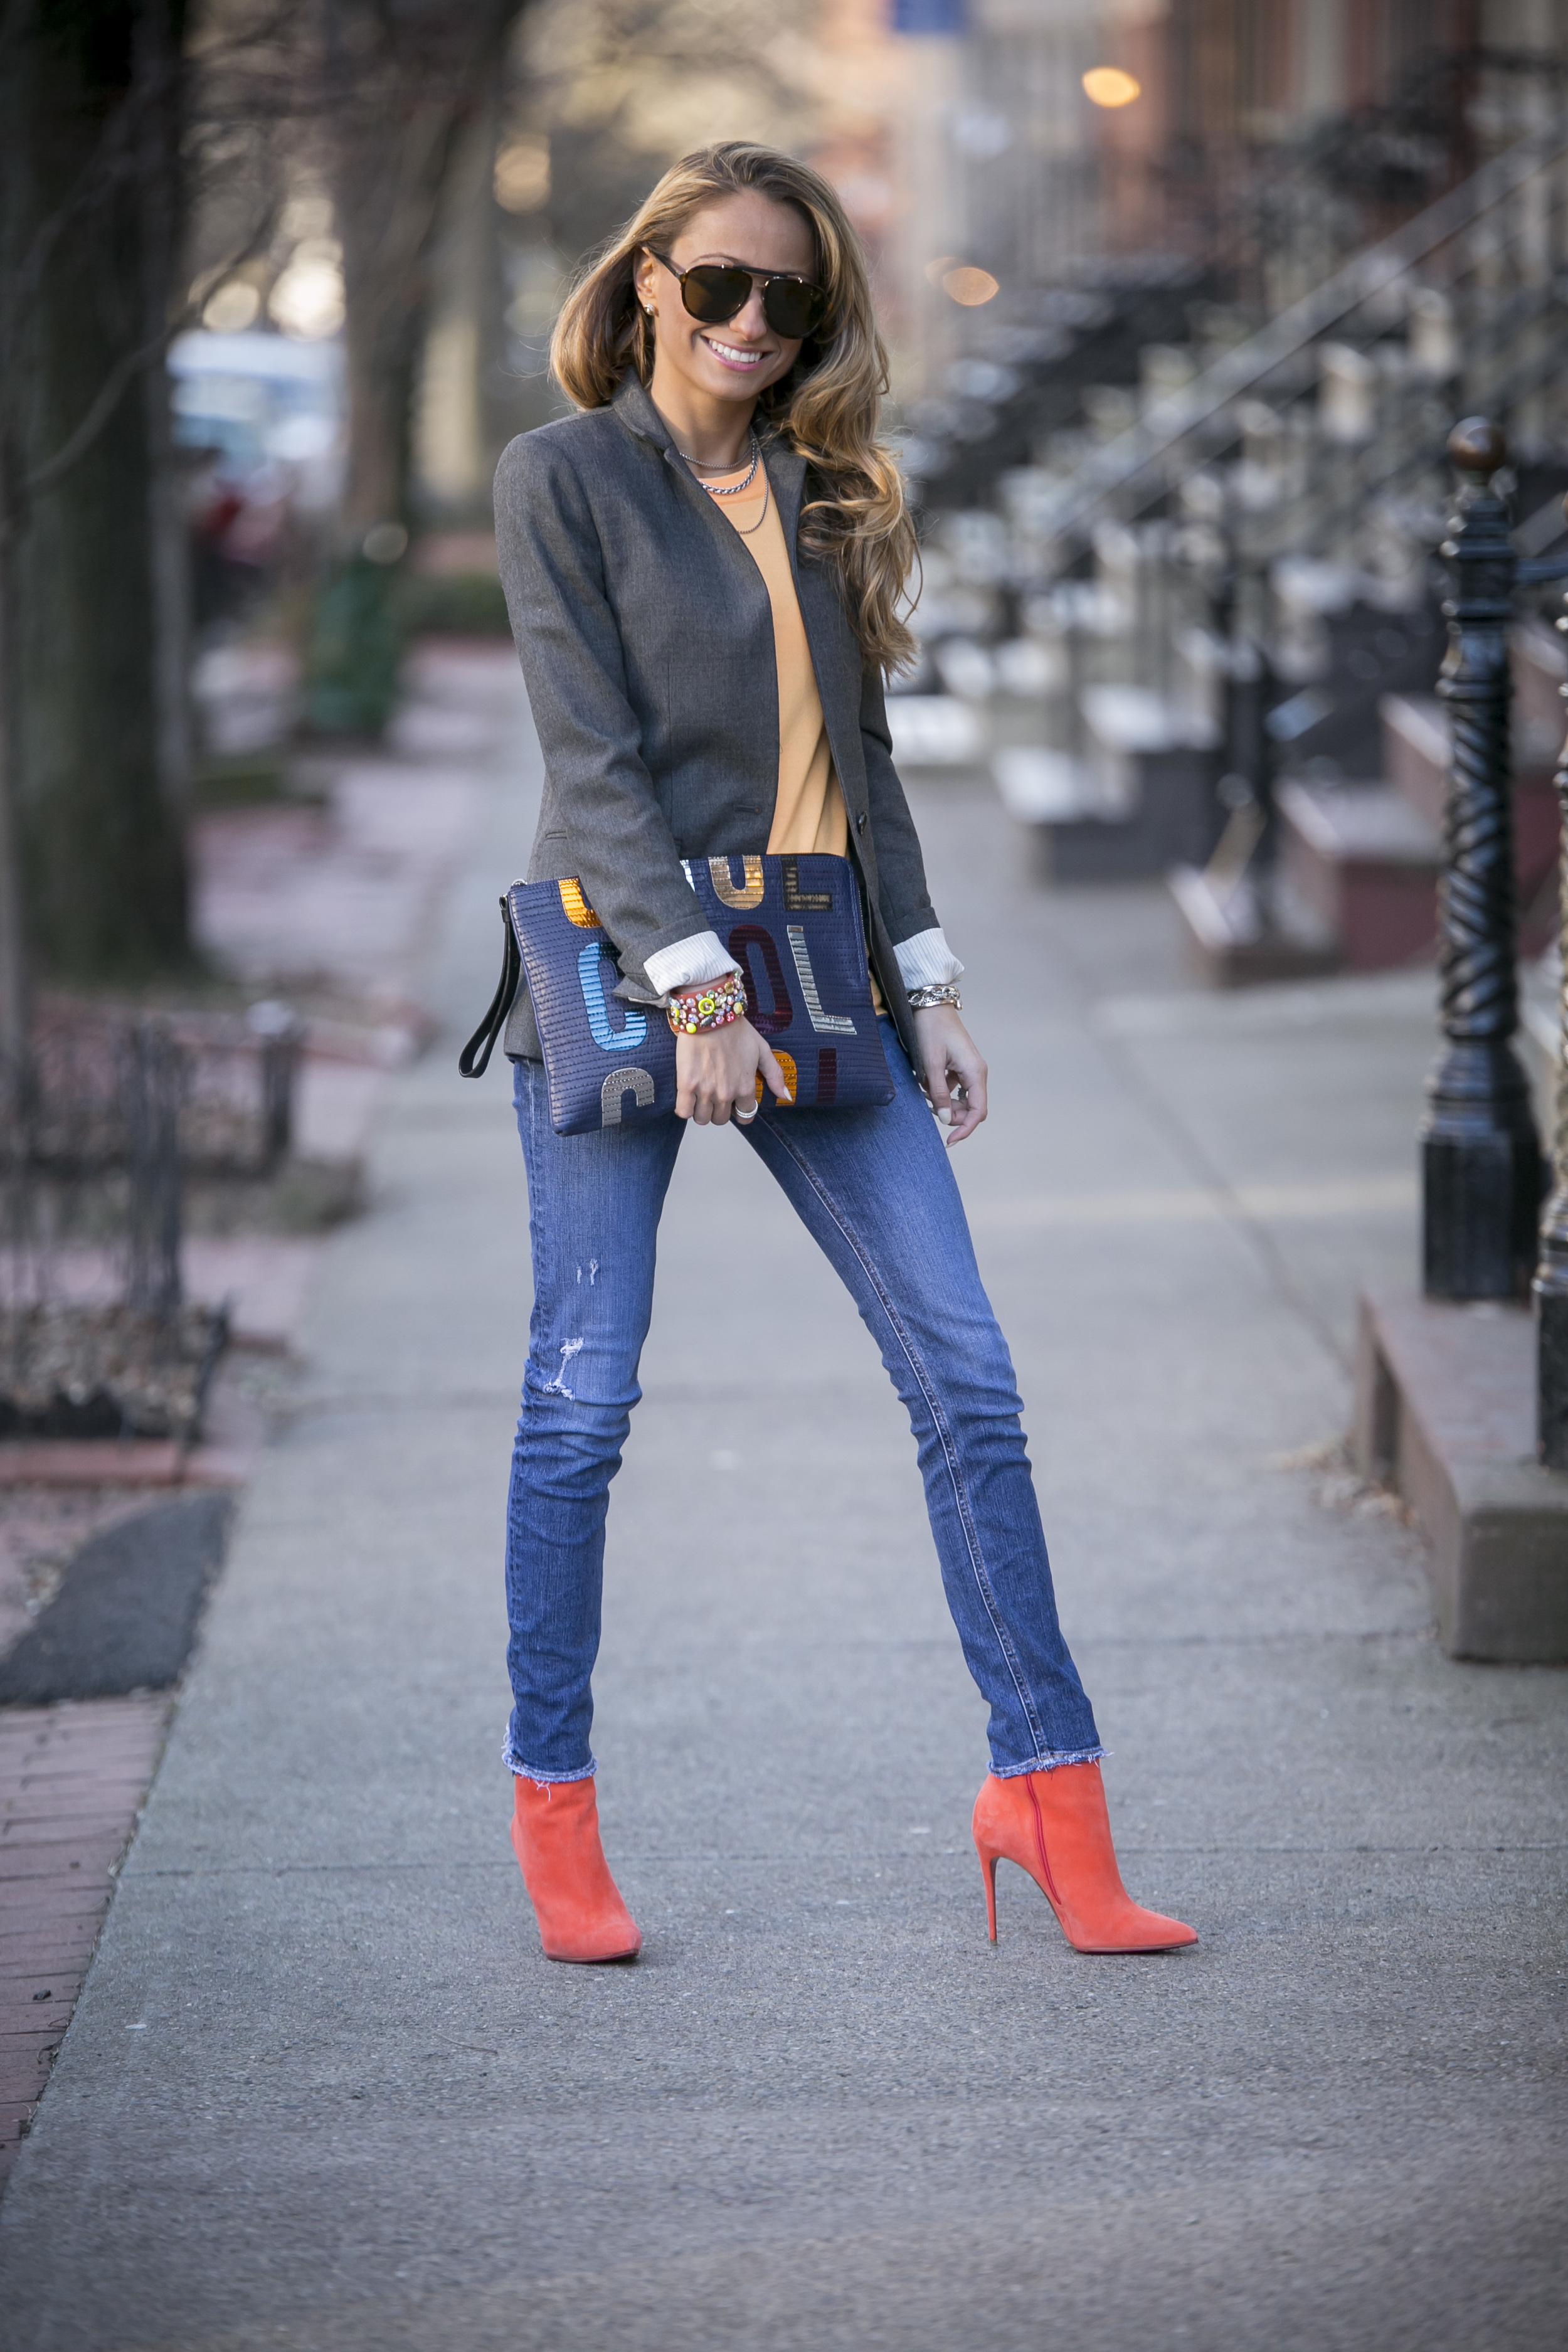 streetstyle blogger Lauren Recchia dressed in J.Crew sweater, J.Crew blazer, rag and bone jeans, and christian louboutin boots